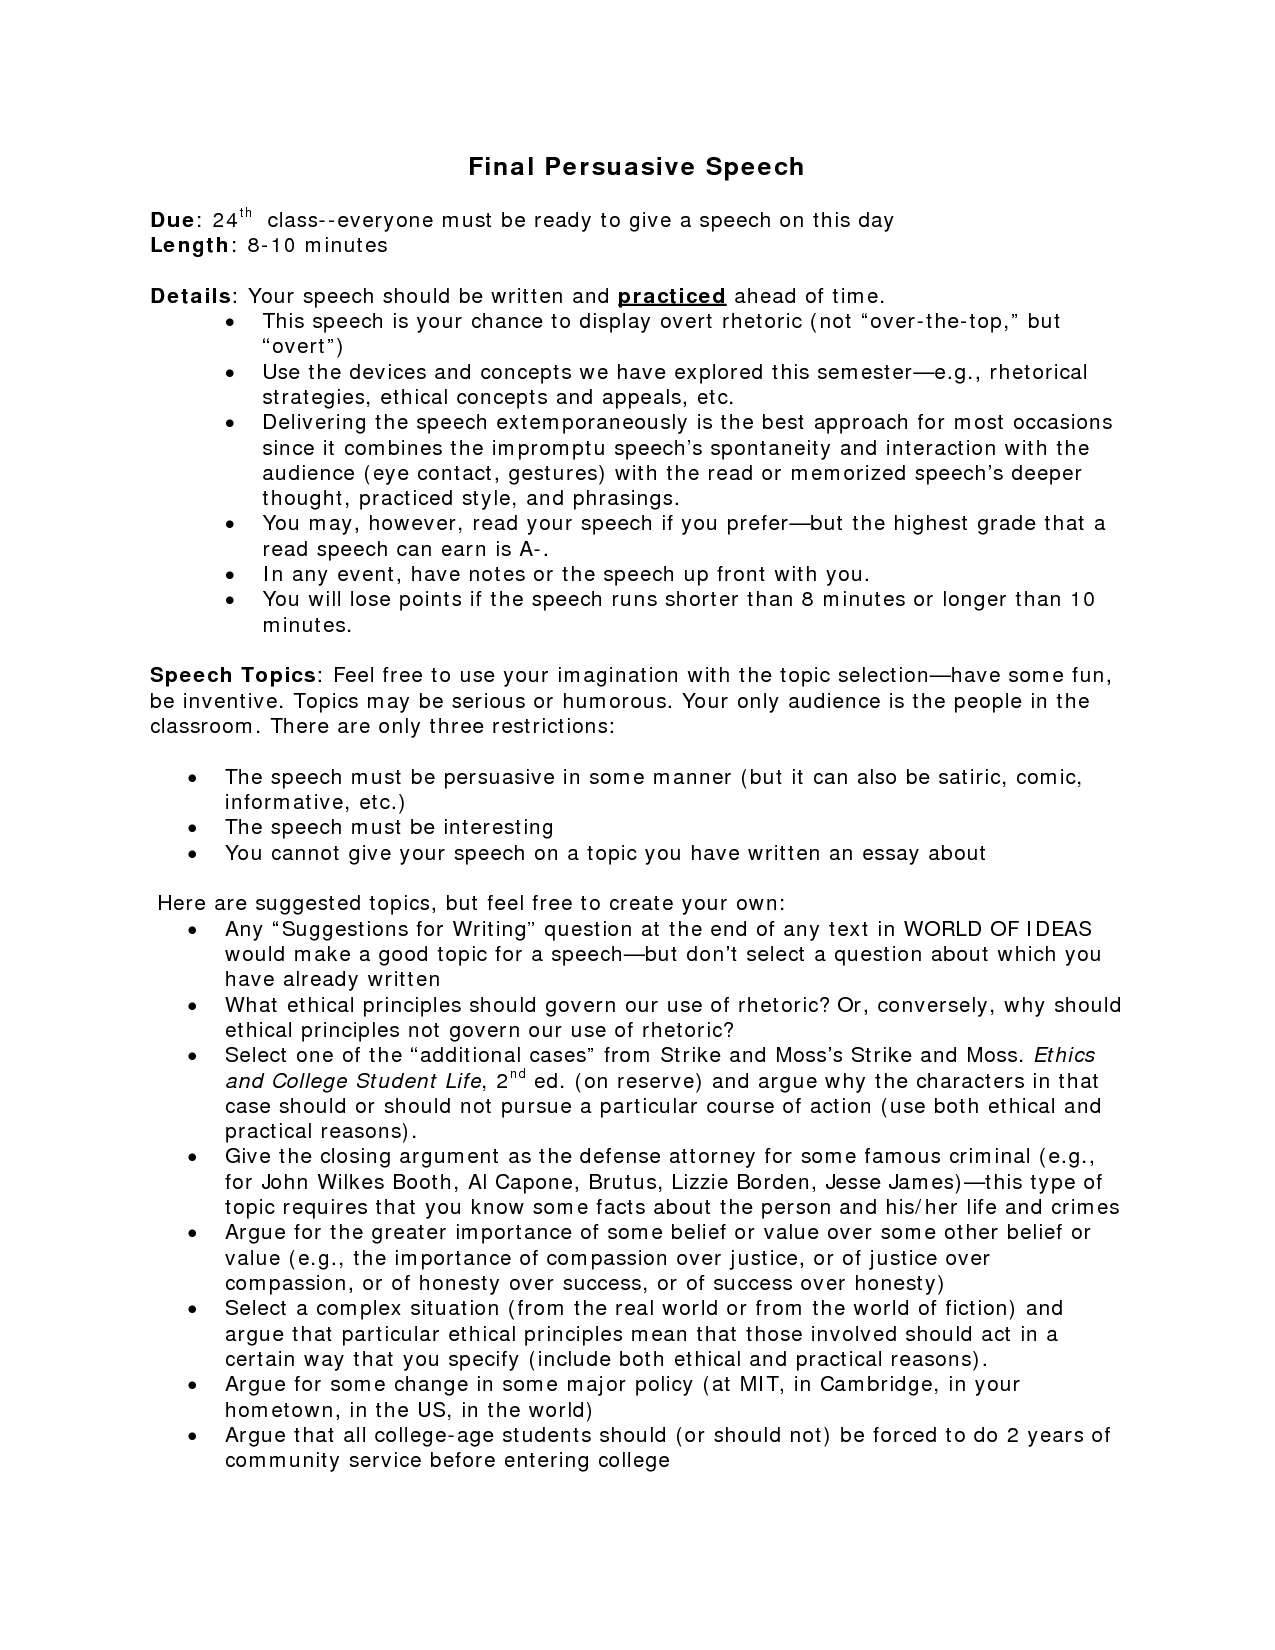 007 Persuasivessay Topics For College Writings Andssays Middle School To Write About Narrativexample Re Science Argumentative Good Paper Informative Listxpository Amazing Persuasive Essay 2018 Uk High Full